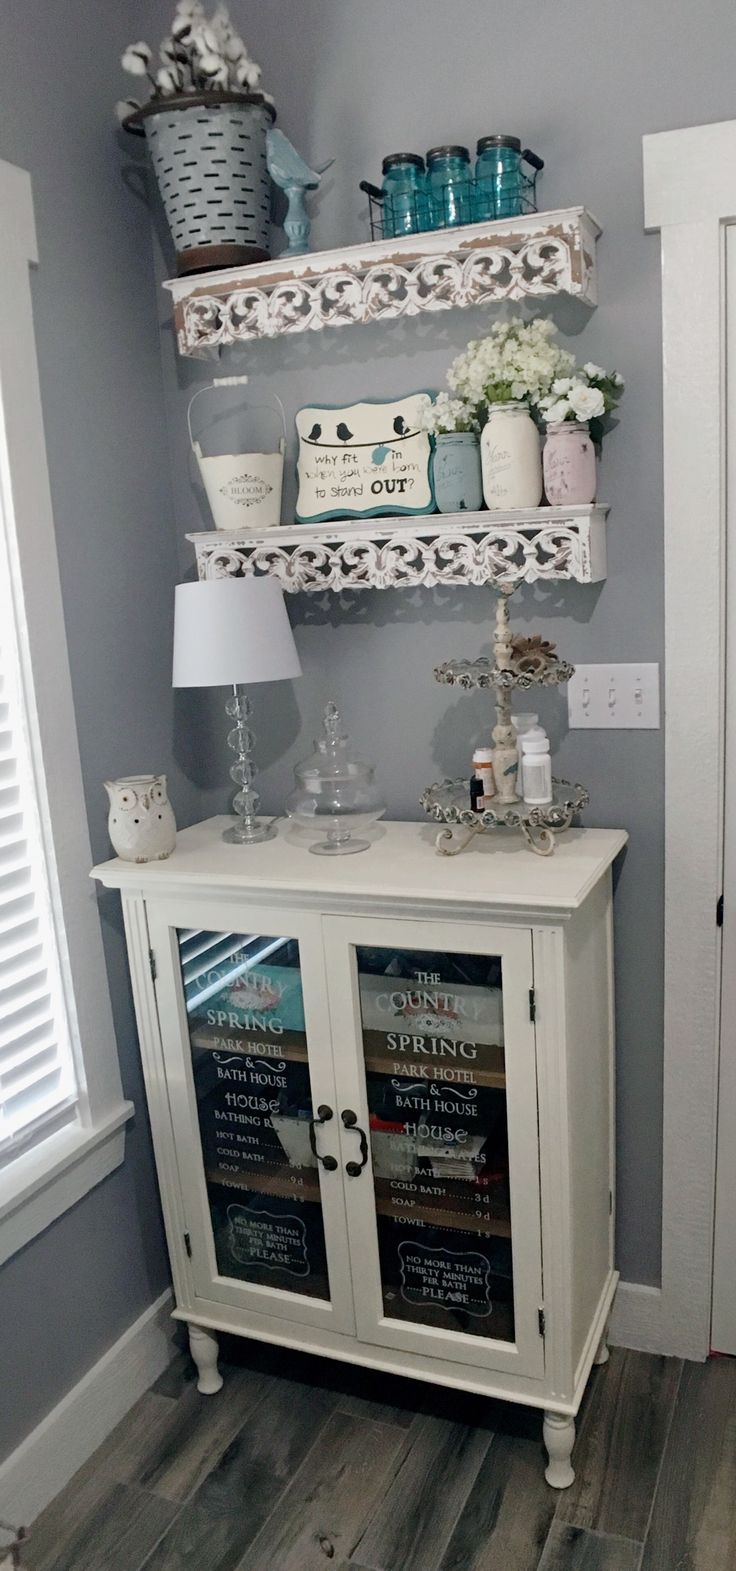 Farmhouse Bathroom, French Country Bathroom, DIY Bathroom, Hobby Lobby Furniture painted, bathroom cabinet, chalk paint